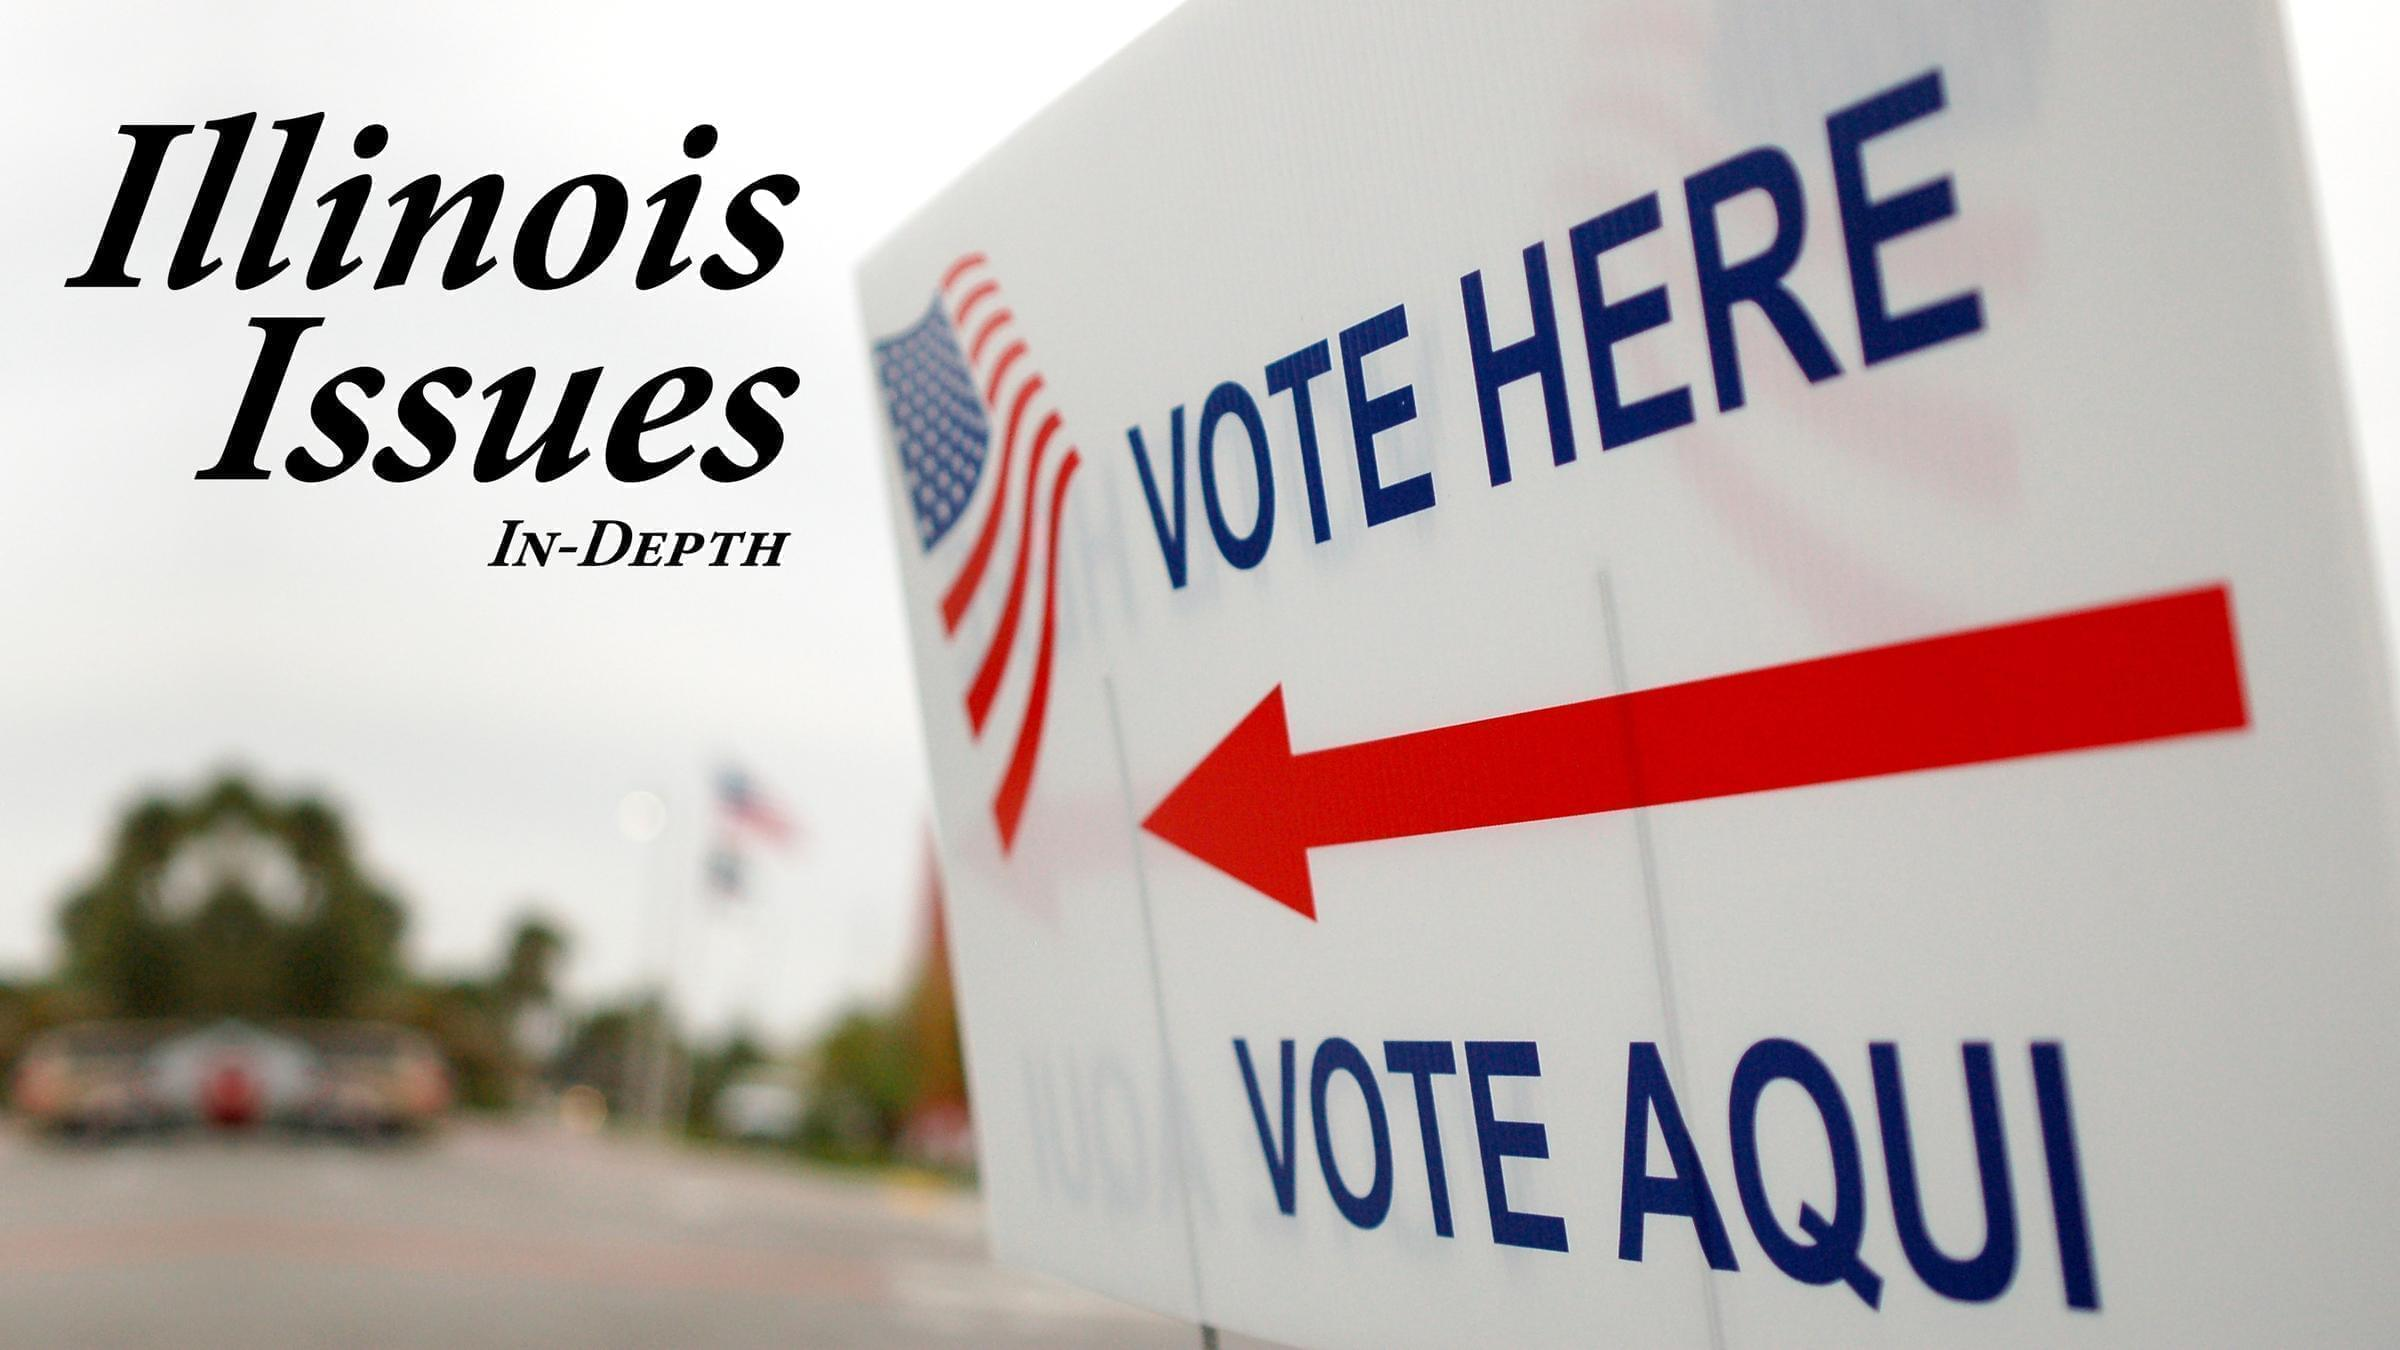 Illinois has some the most restrictive rules when it comes to ballot access for third-party and independent candidates.